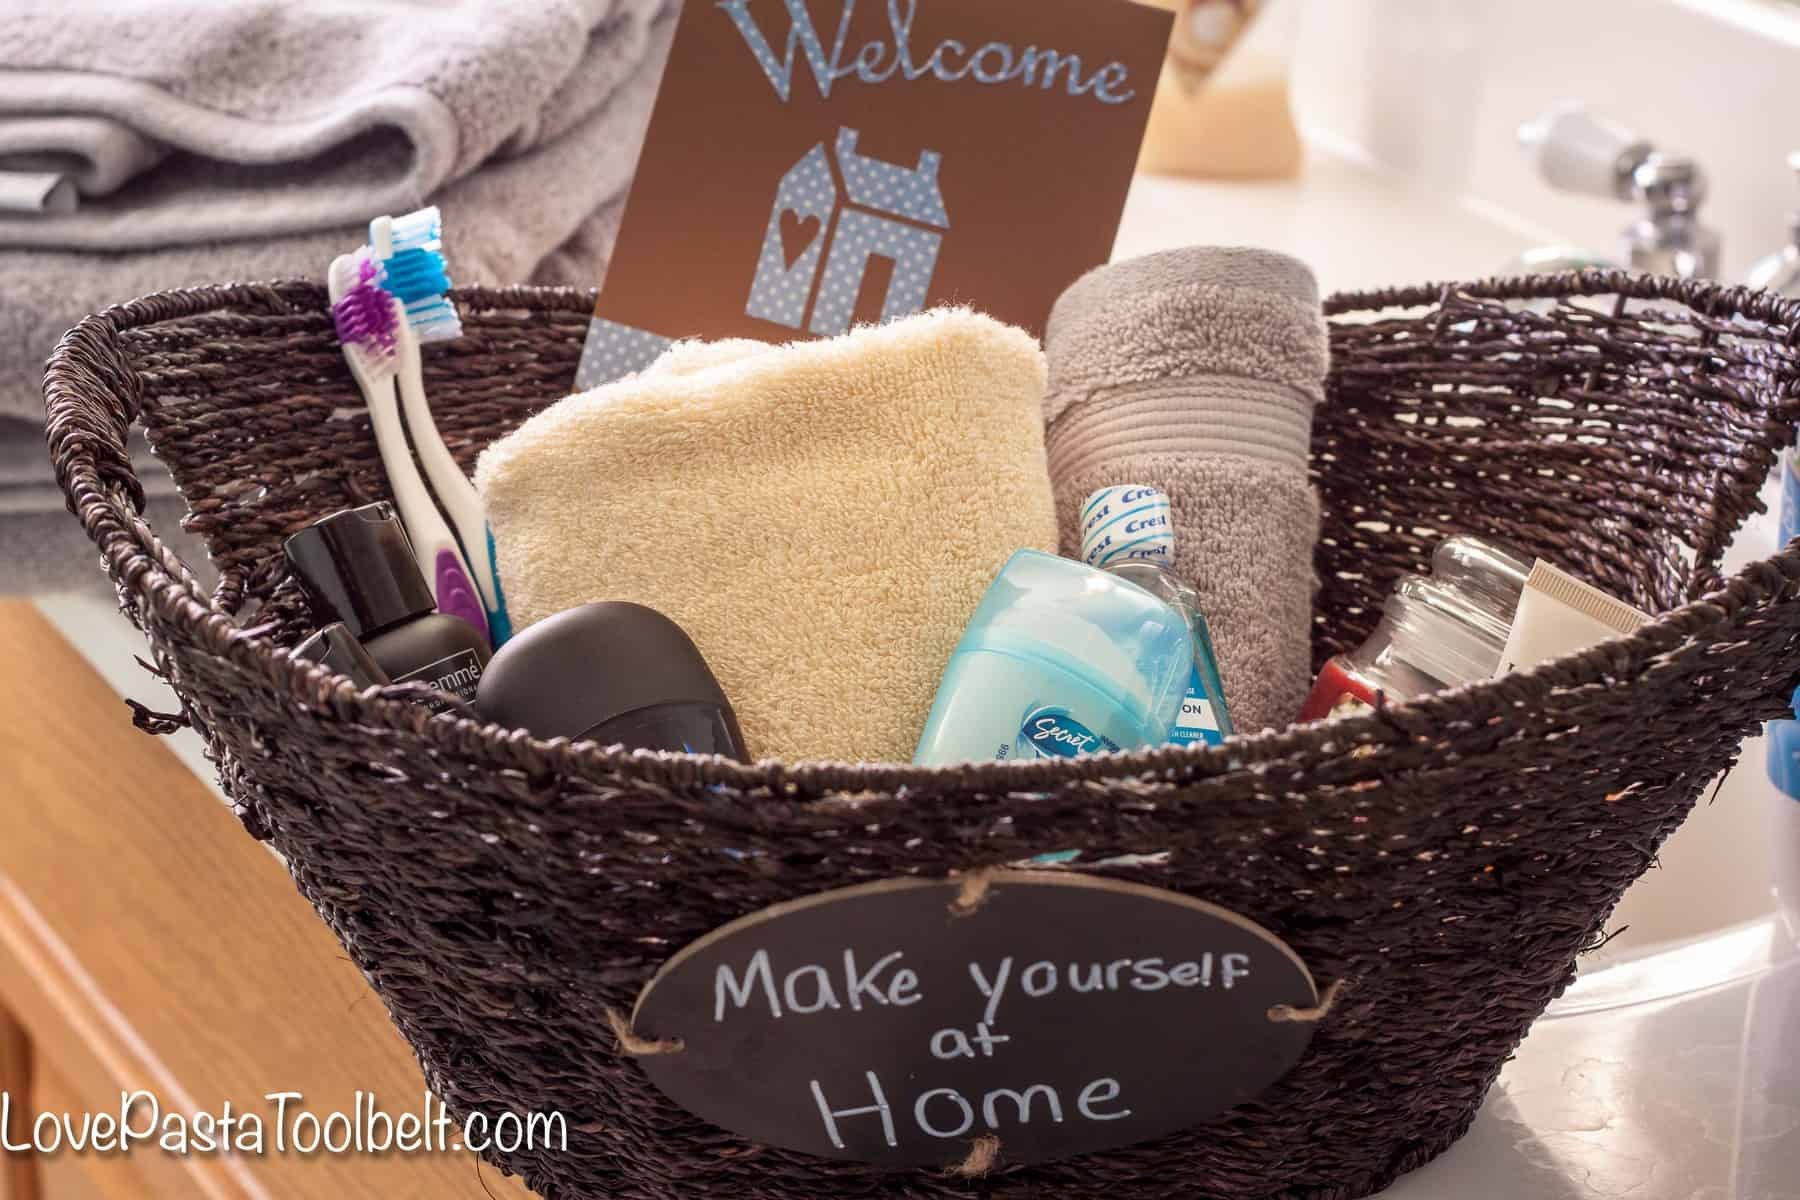 Amazing Help Your Guests Feel More At Home With This Guest Bathroom Welcome  Basket!  Love